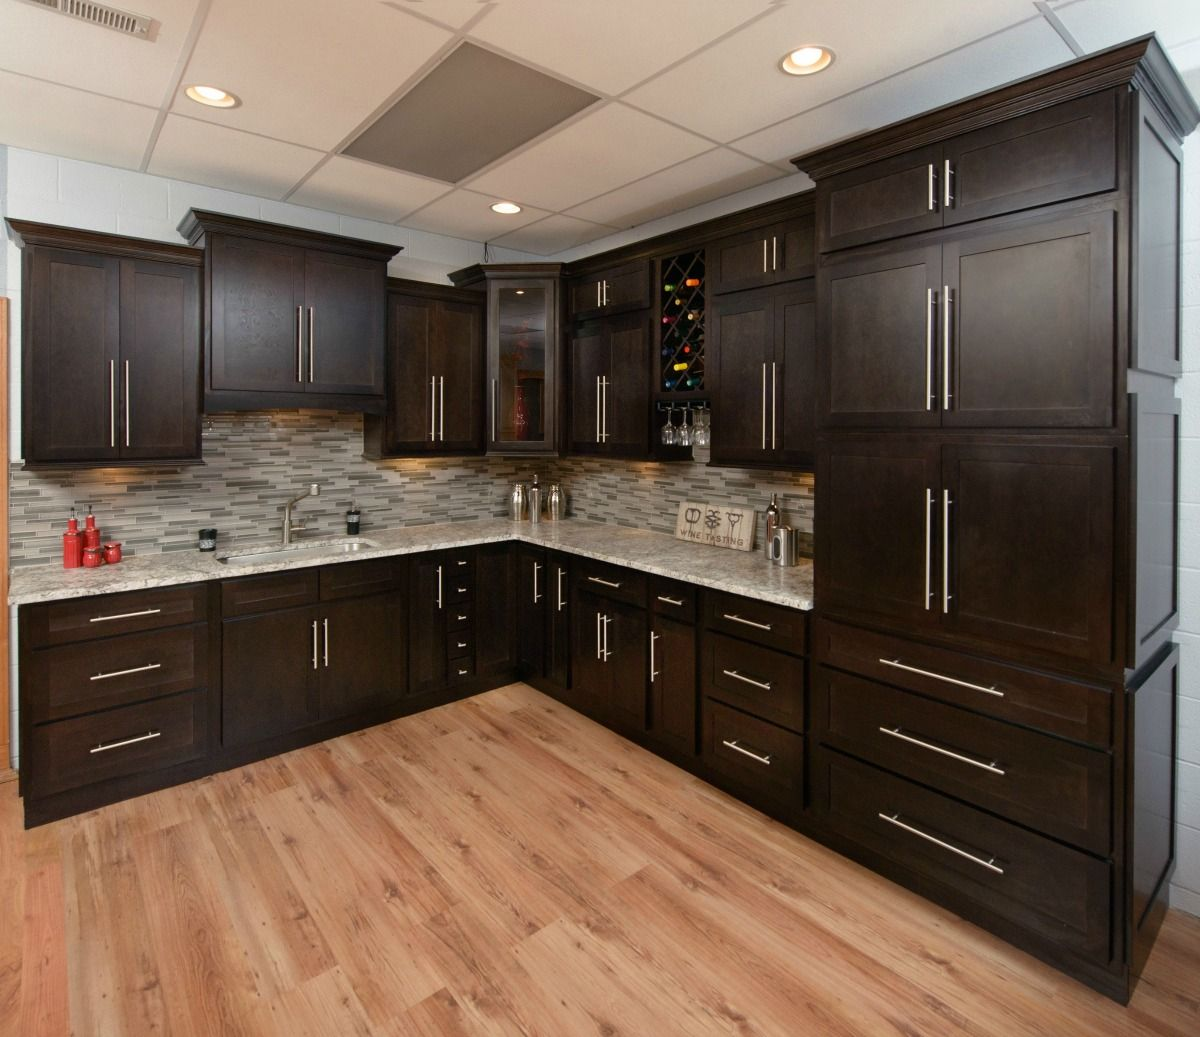 Tribeca Shaker Shaker Kitchen Cabinets Kitchen Cabinet Design Kitchen Design